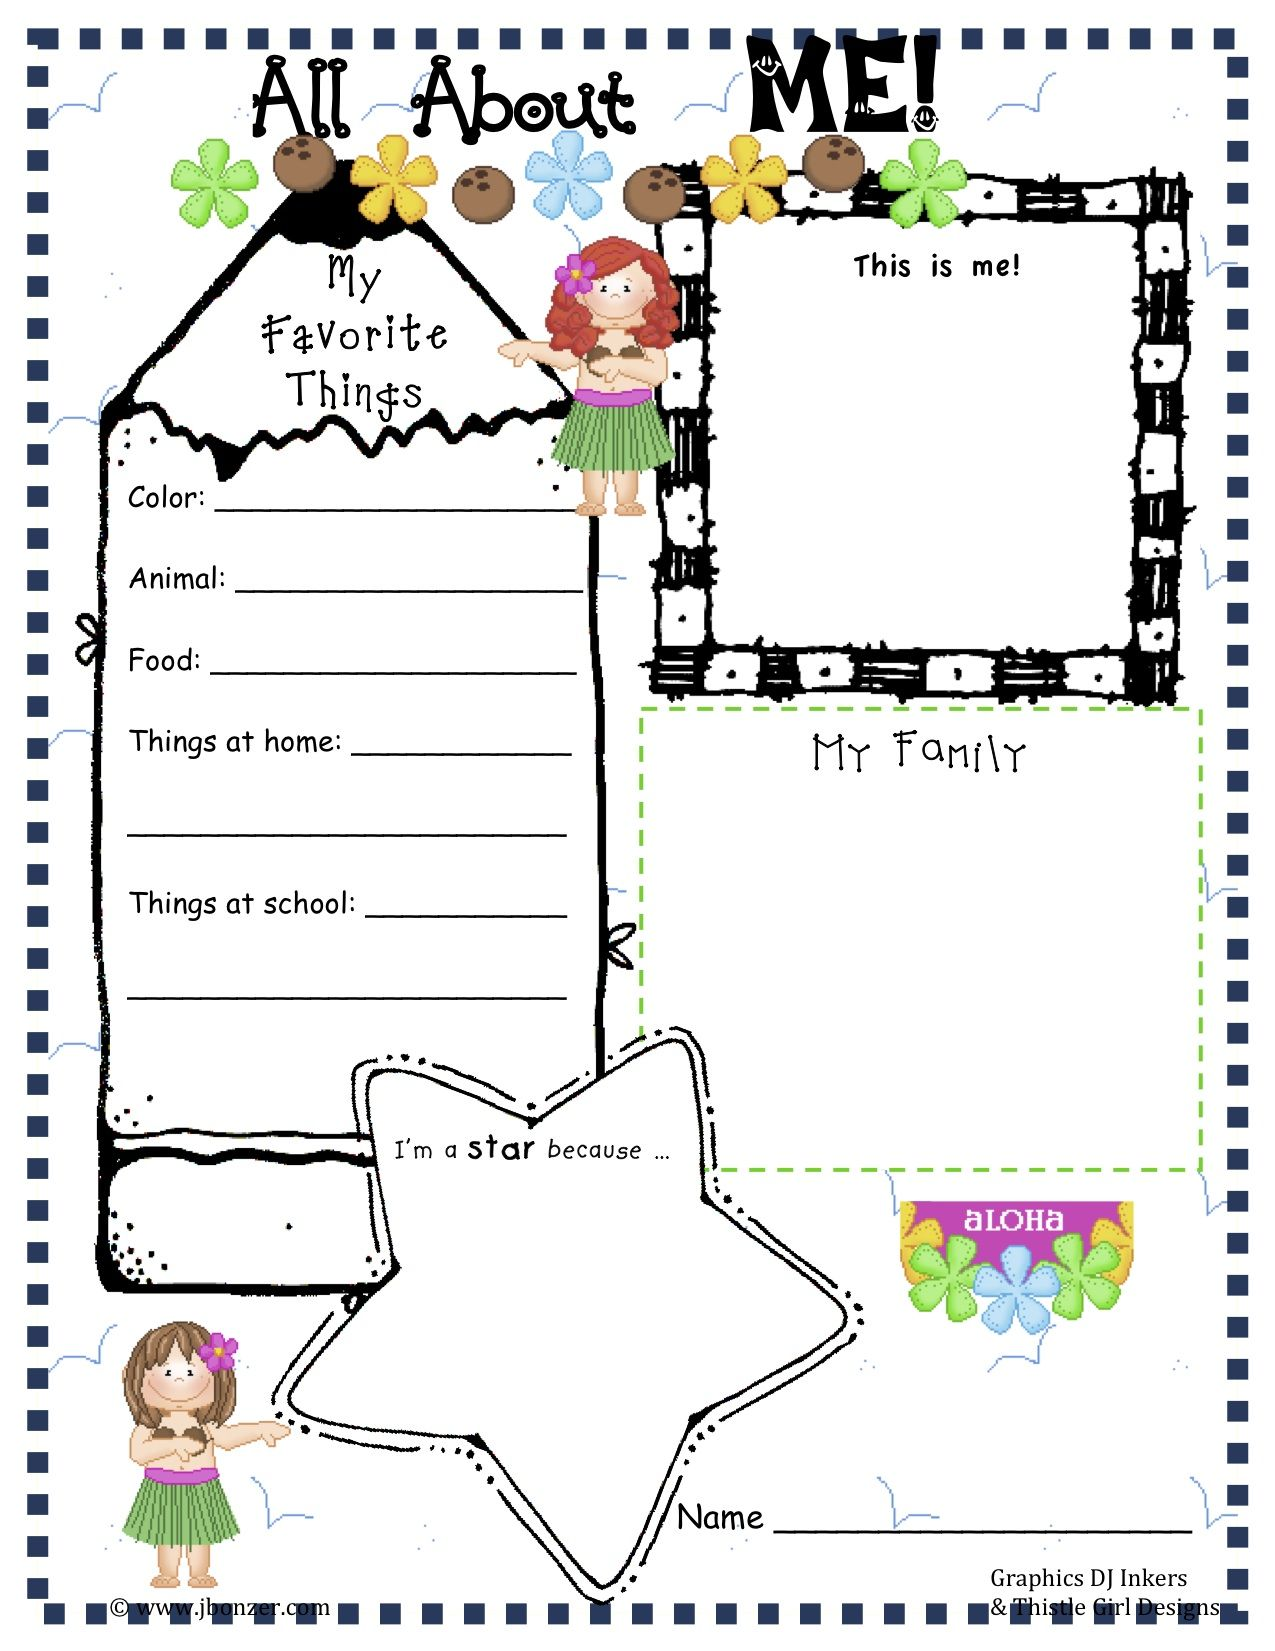 Free Preschool All About Me Worksheets